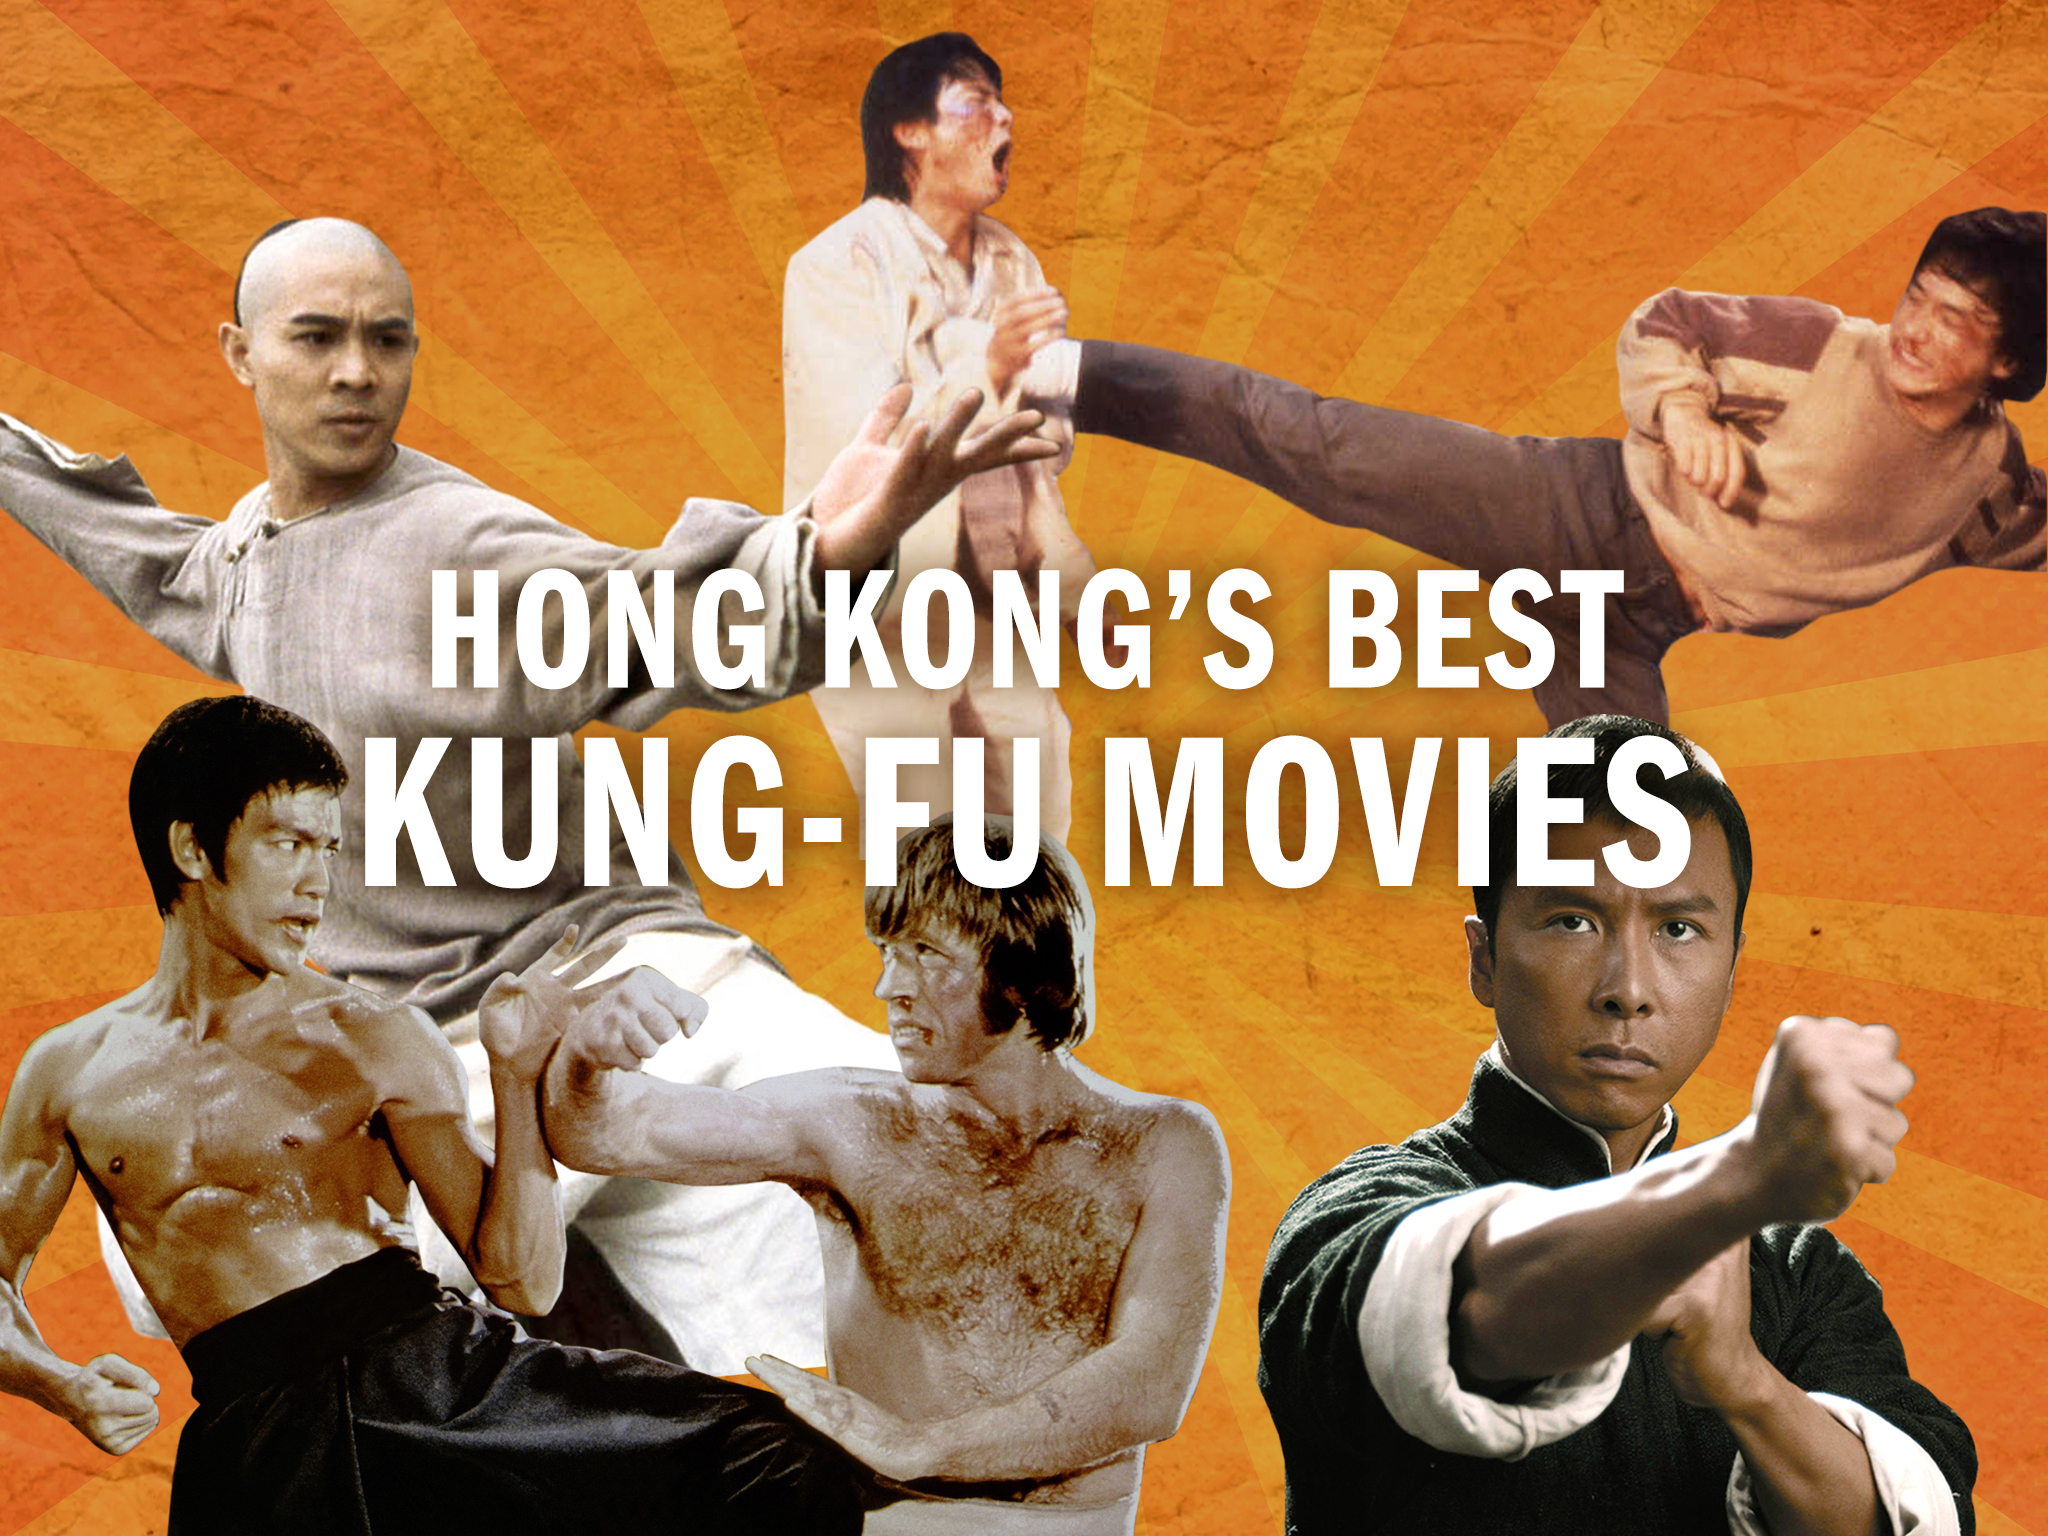 The 21 best kung-fu movies made in Hong Kong